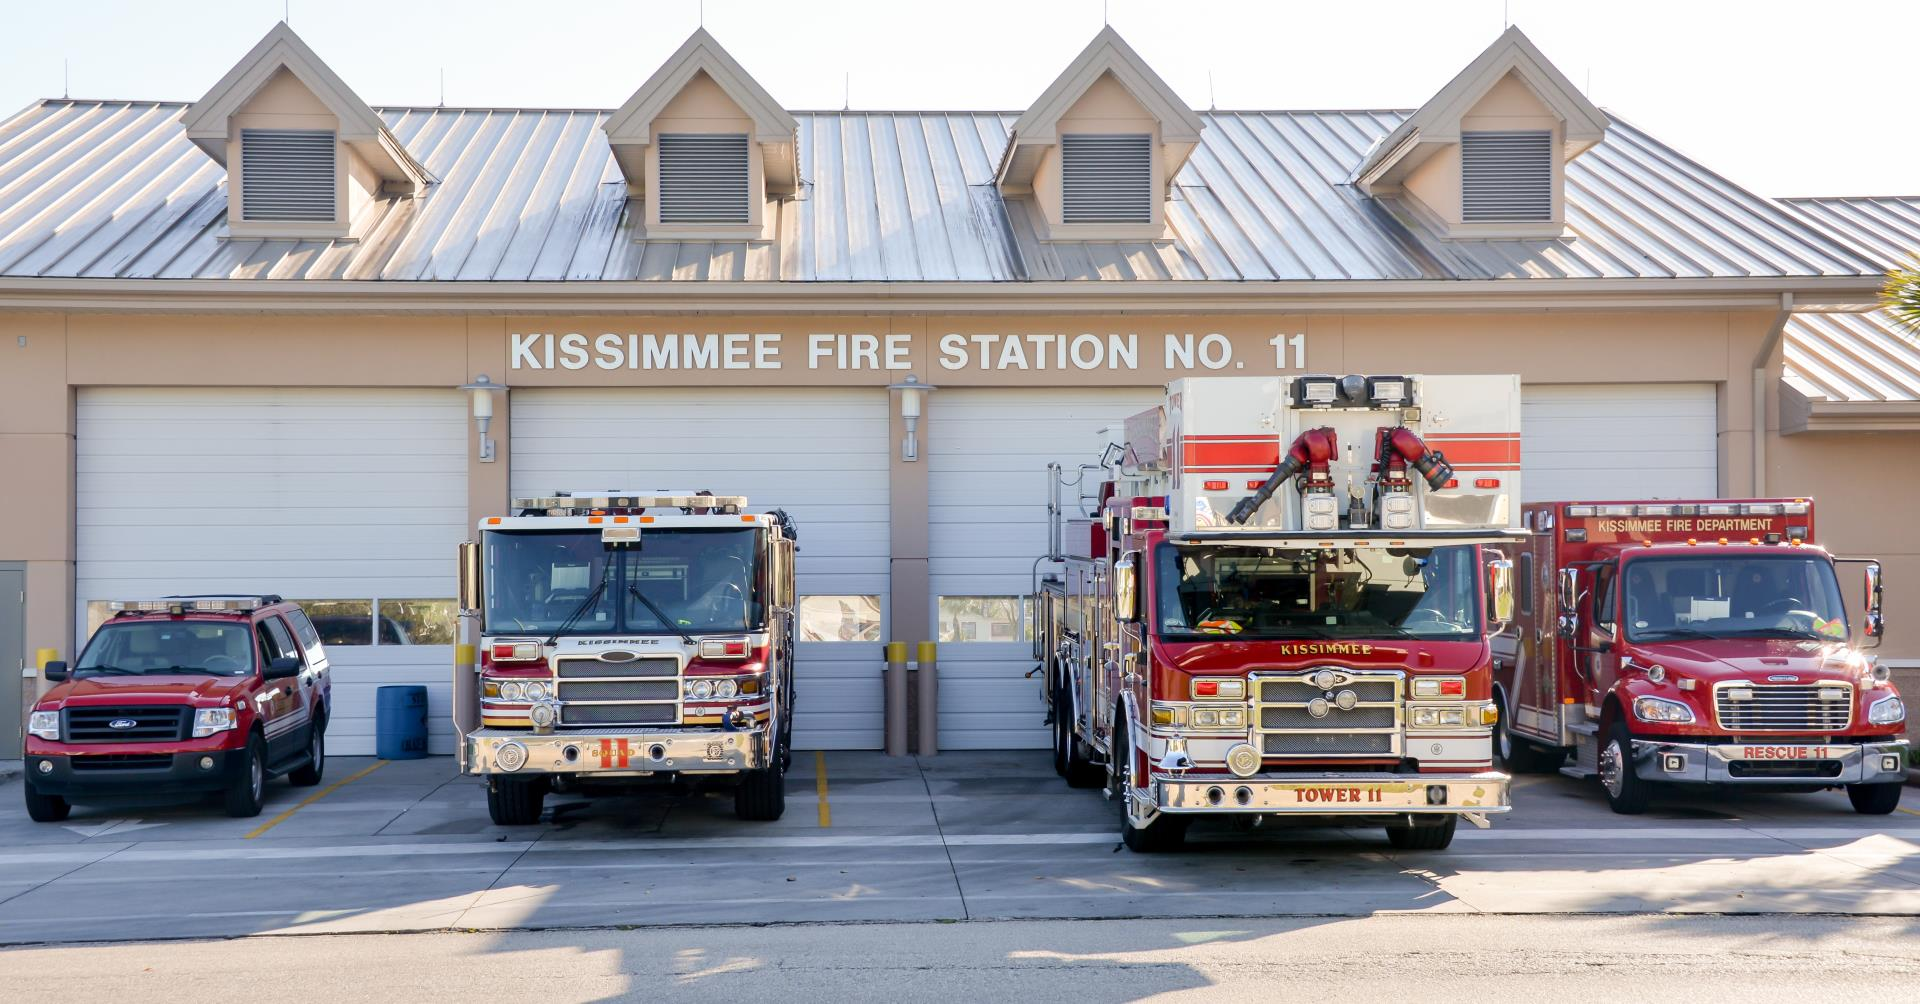 Kissimmee Fire Station 11 with trucks